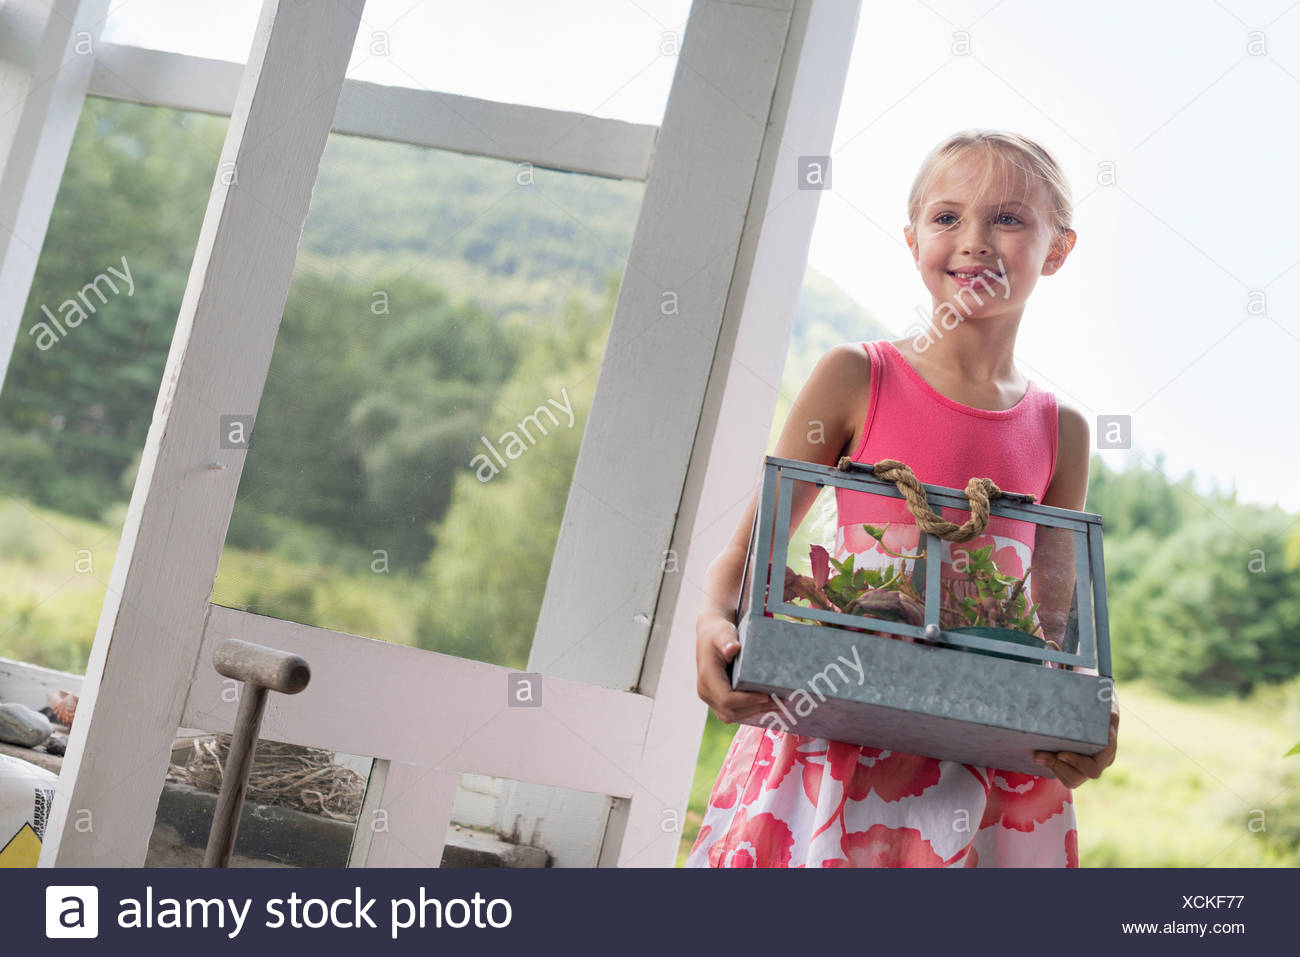 A young girl in a kitchen wearing a pink dress.  Carrying a terrarium containing small plants. - Stock Image